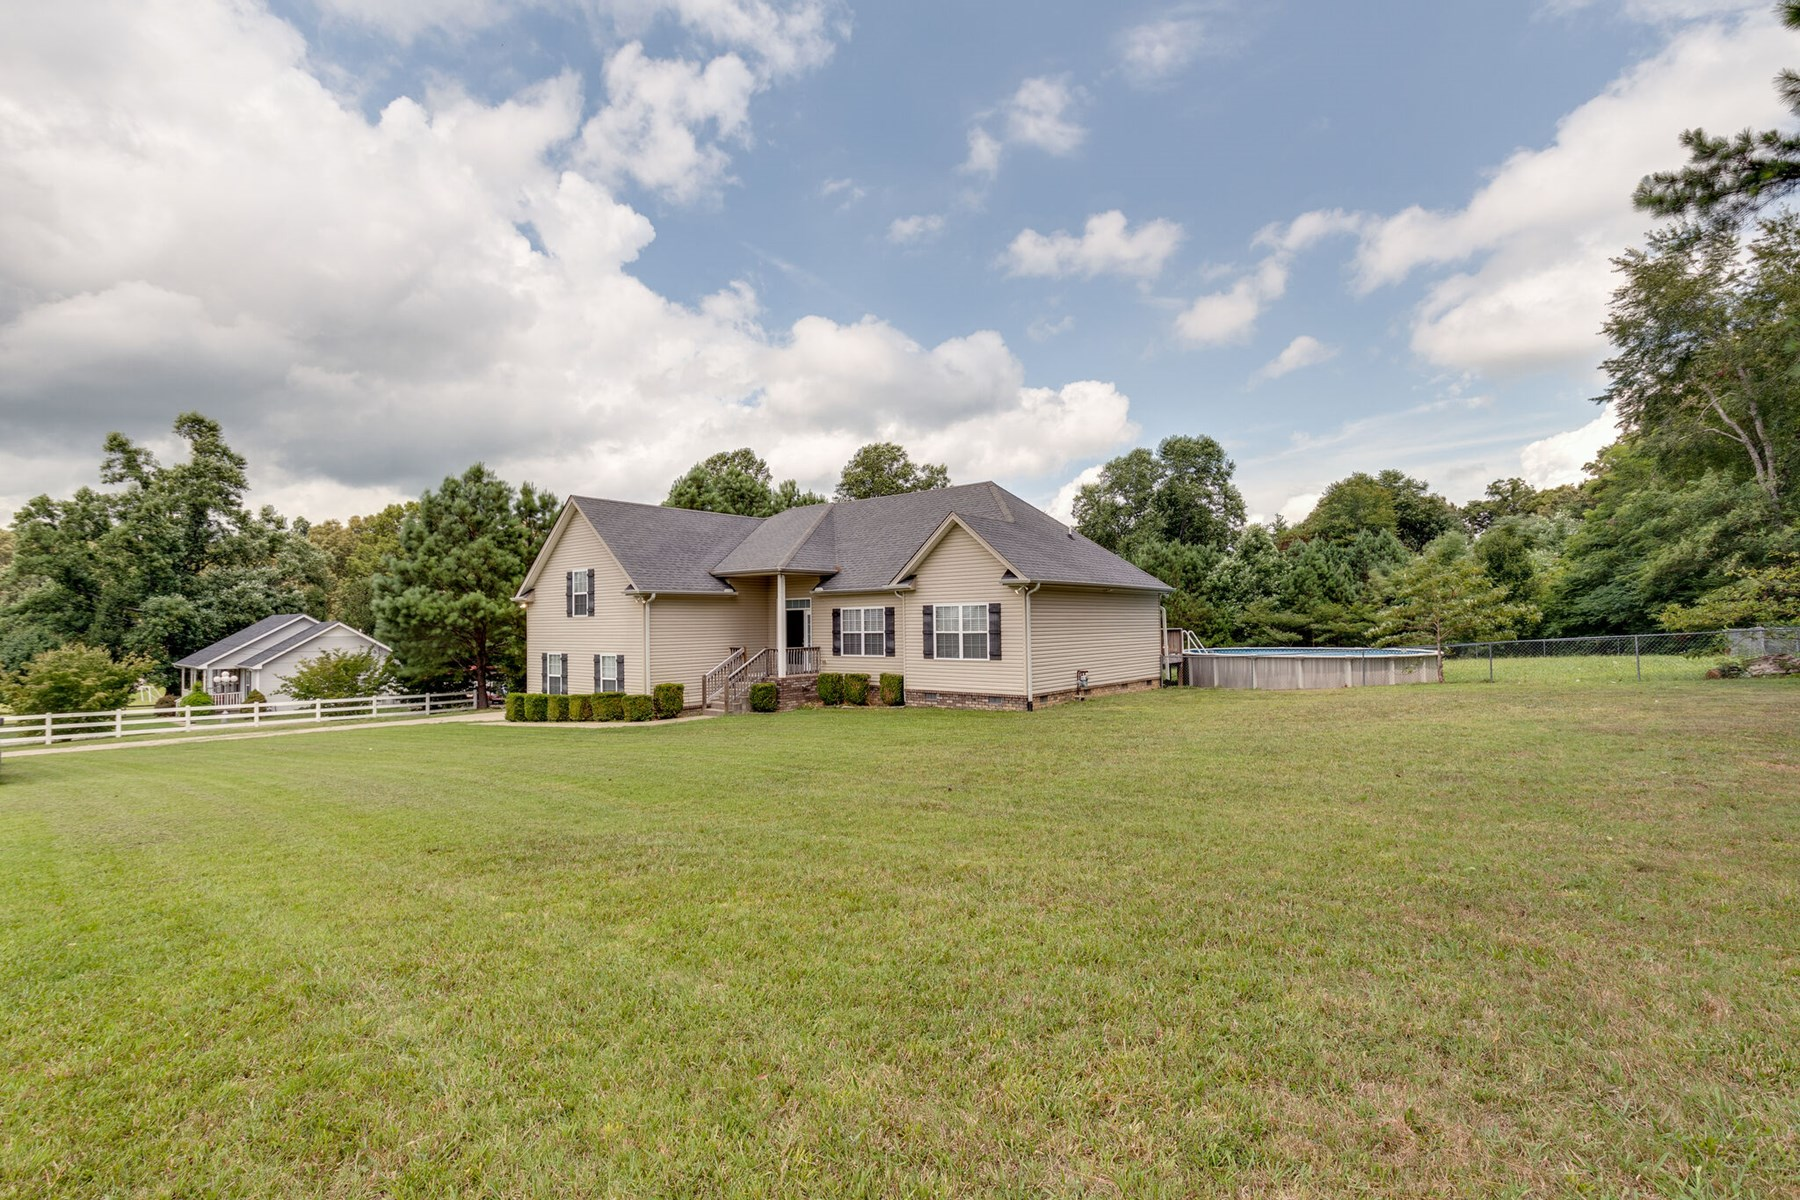 Country Home with Acreage for Sale, in Dickson, Tennessee